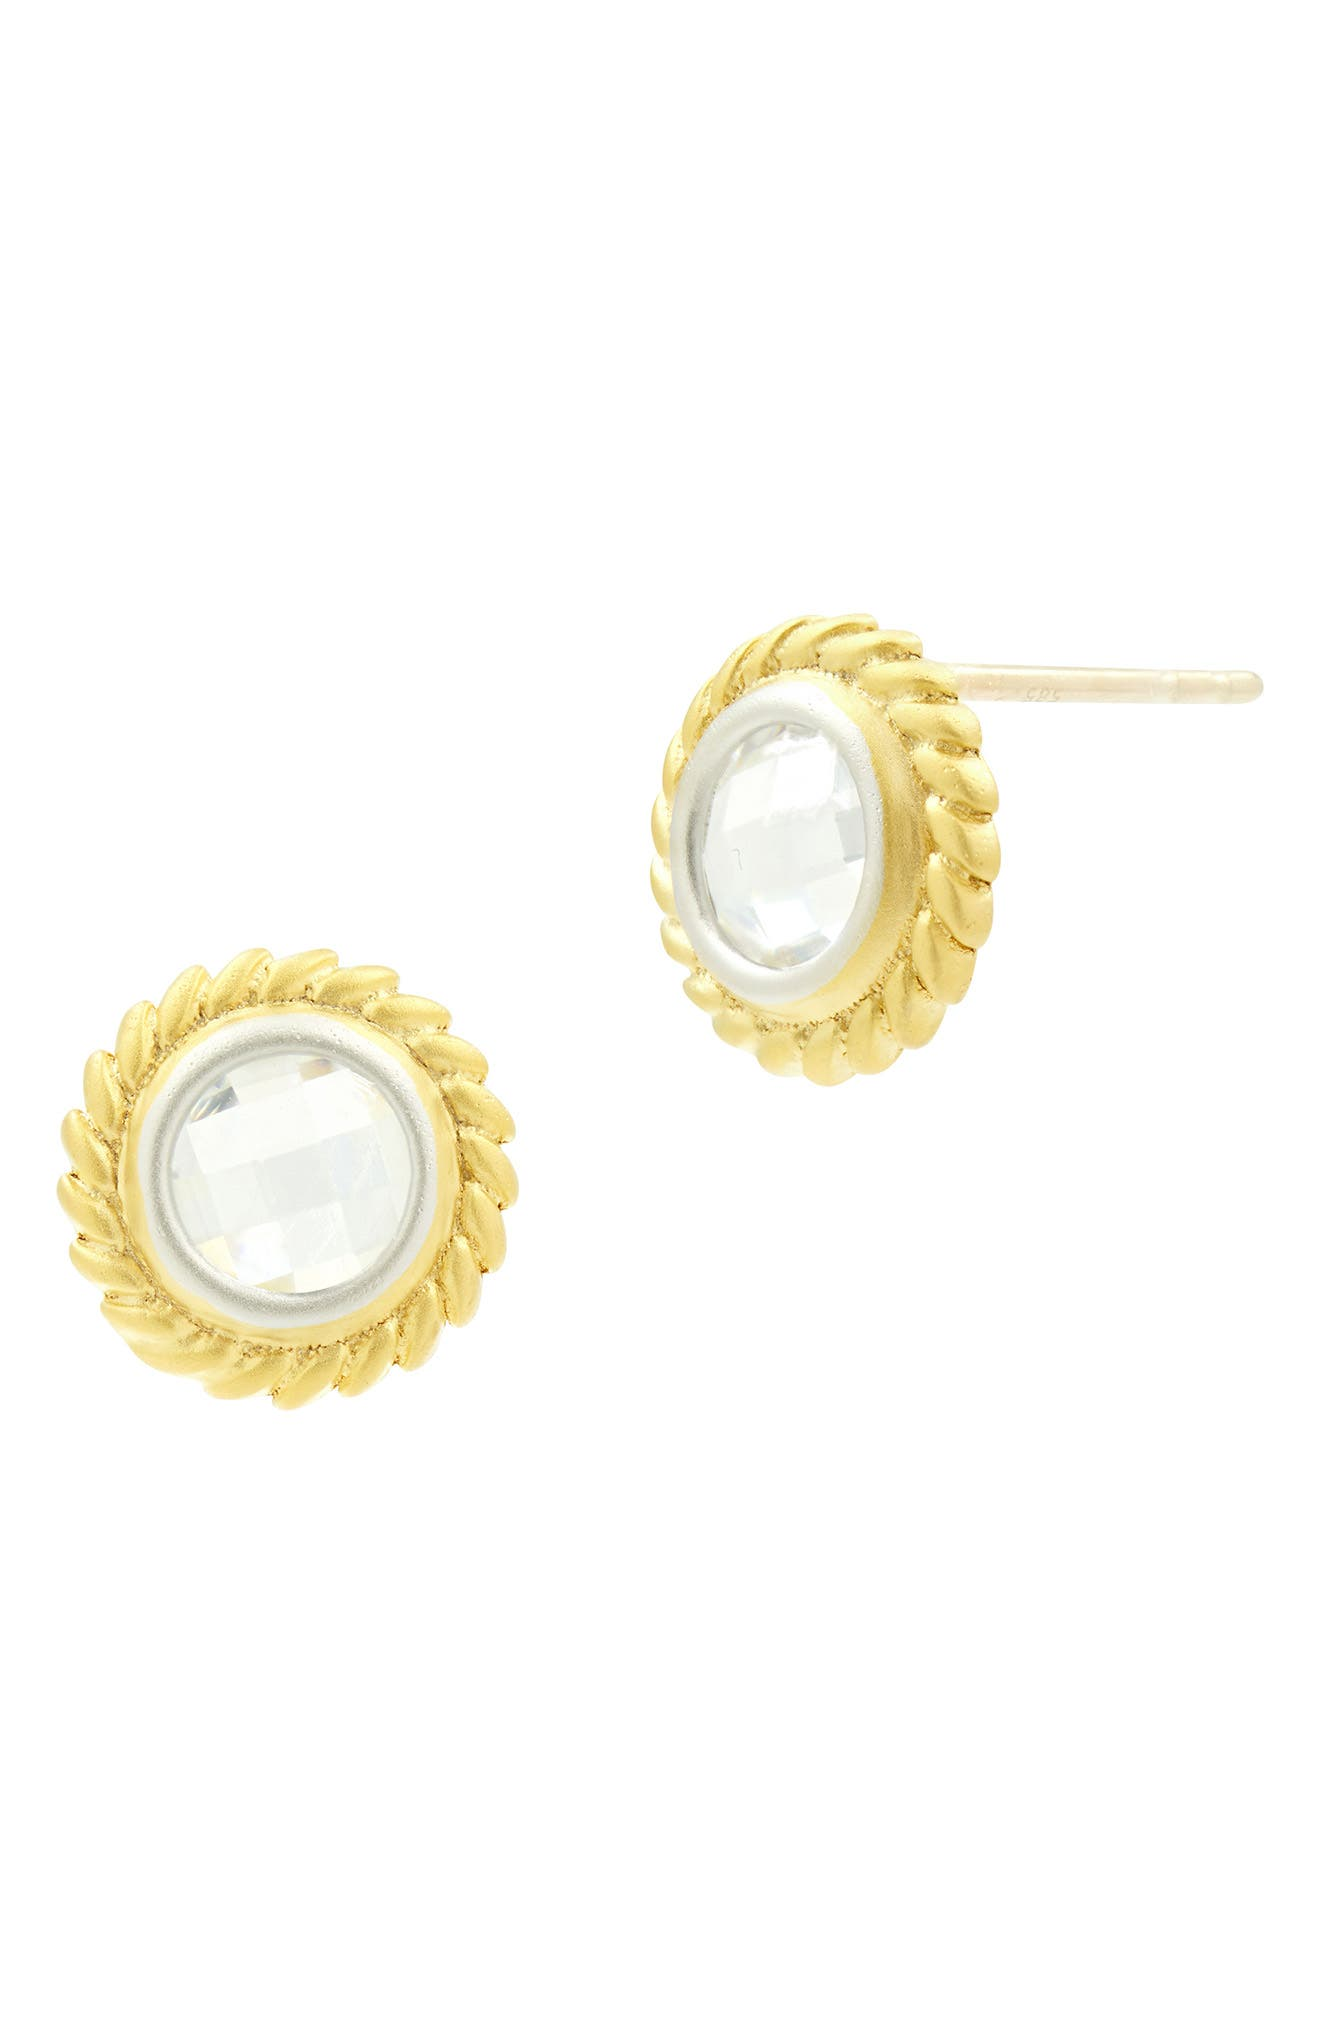 Fleur Bloom Disc Earrings,                         Main,                         color, SILVER AND GOLD